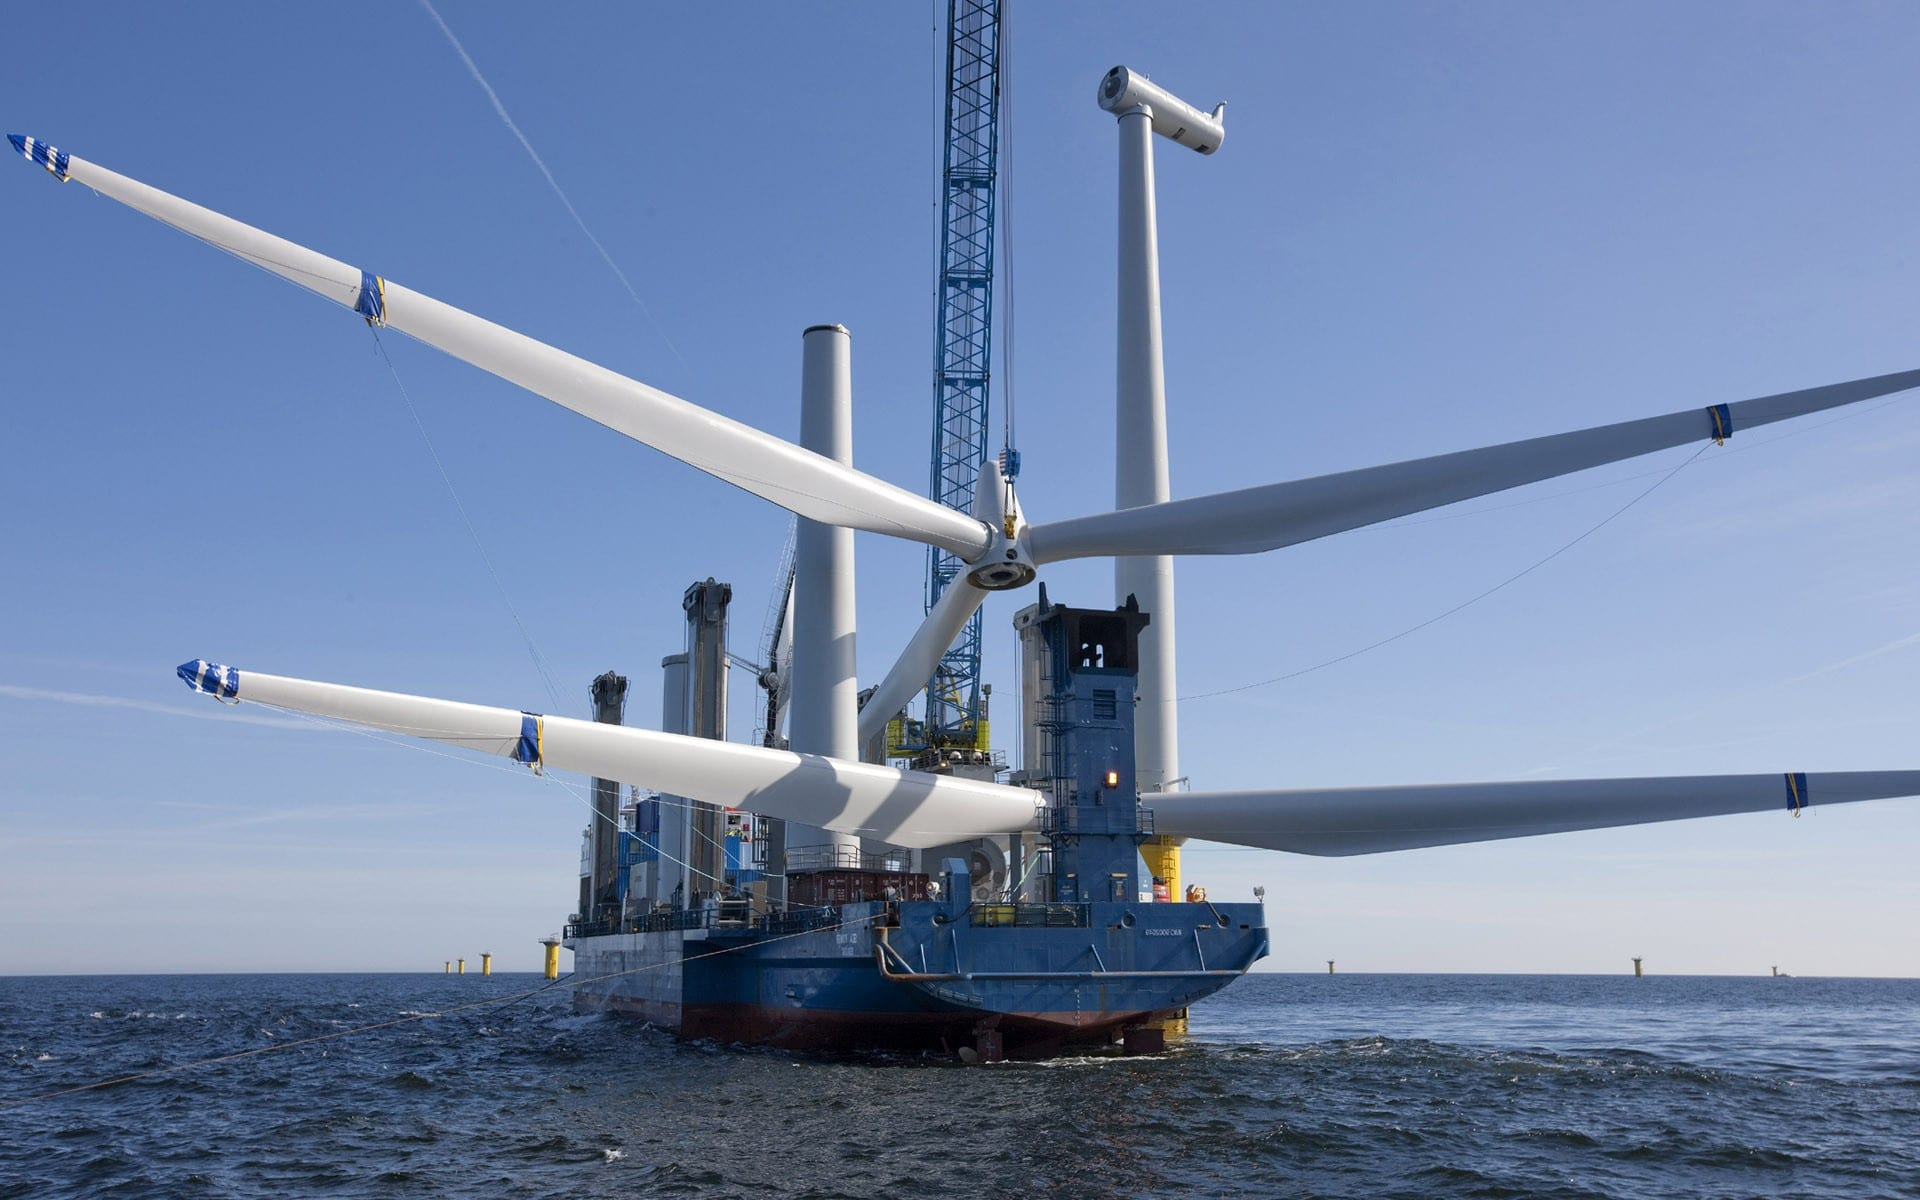 Turbines being constructed from the shipping vessel.